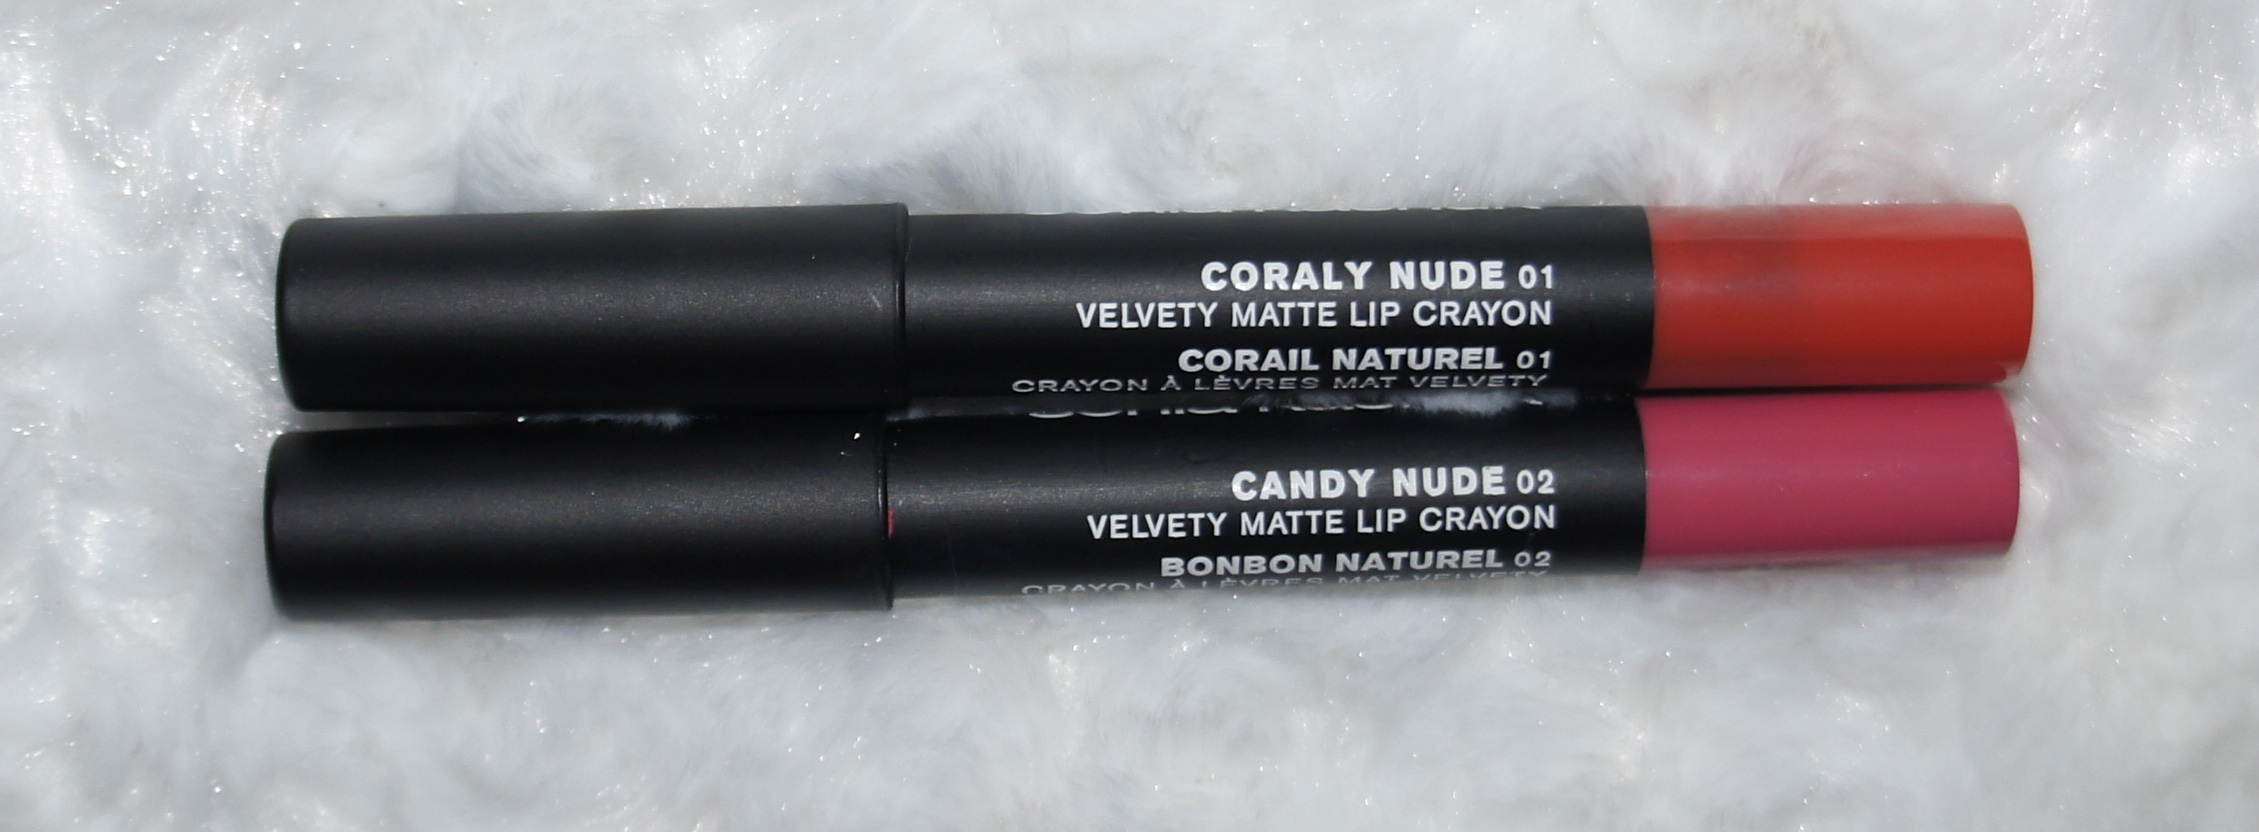 Sonia Kashuk Spring 2014 Collection - Velvety Matte Lip Crayon(Candy Nude, Coraly Nude)